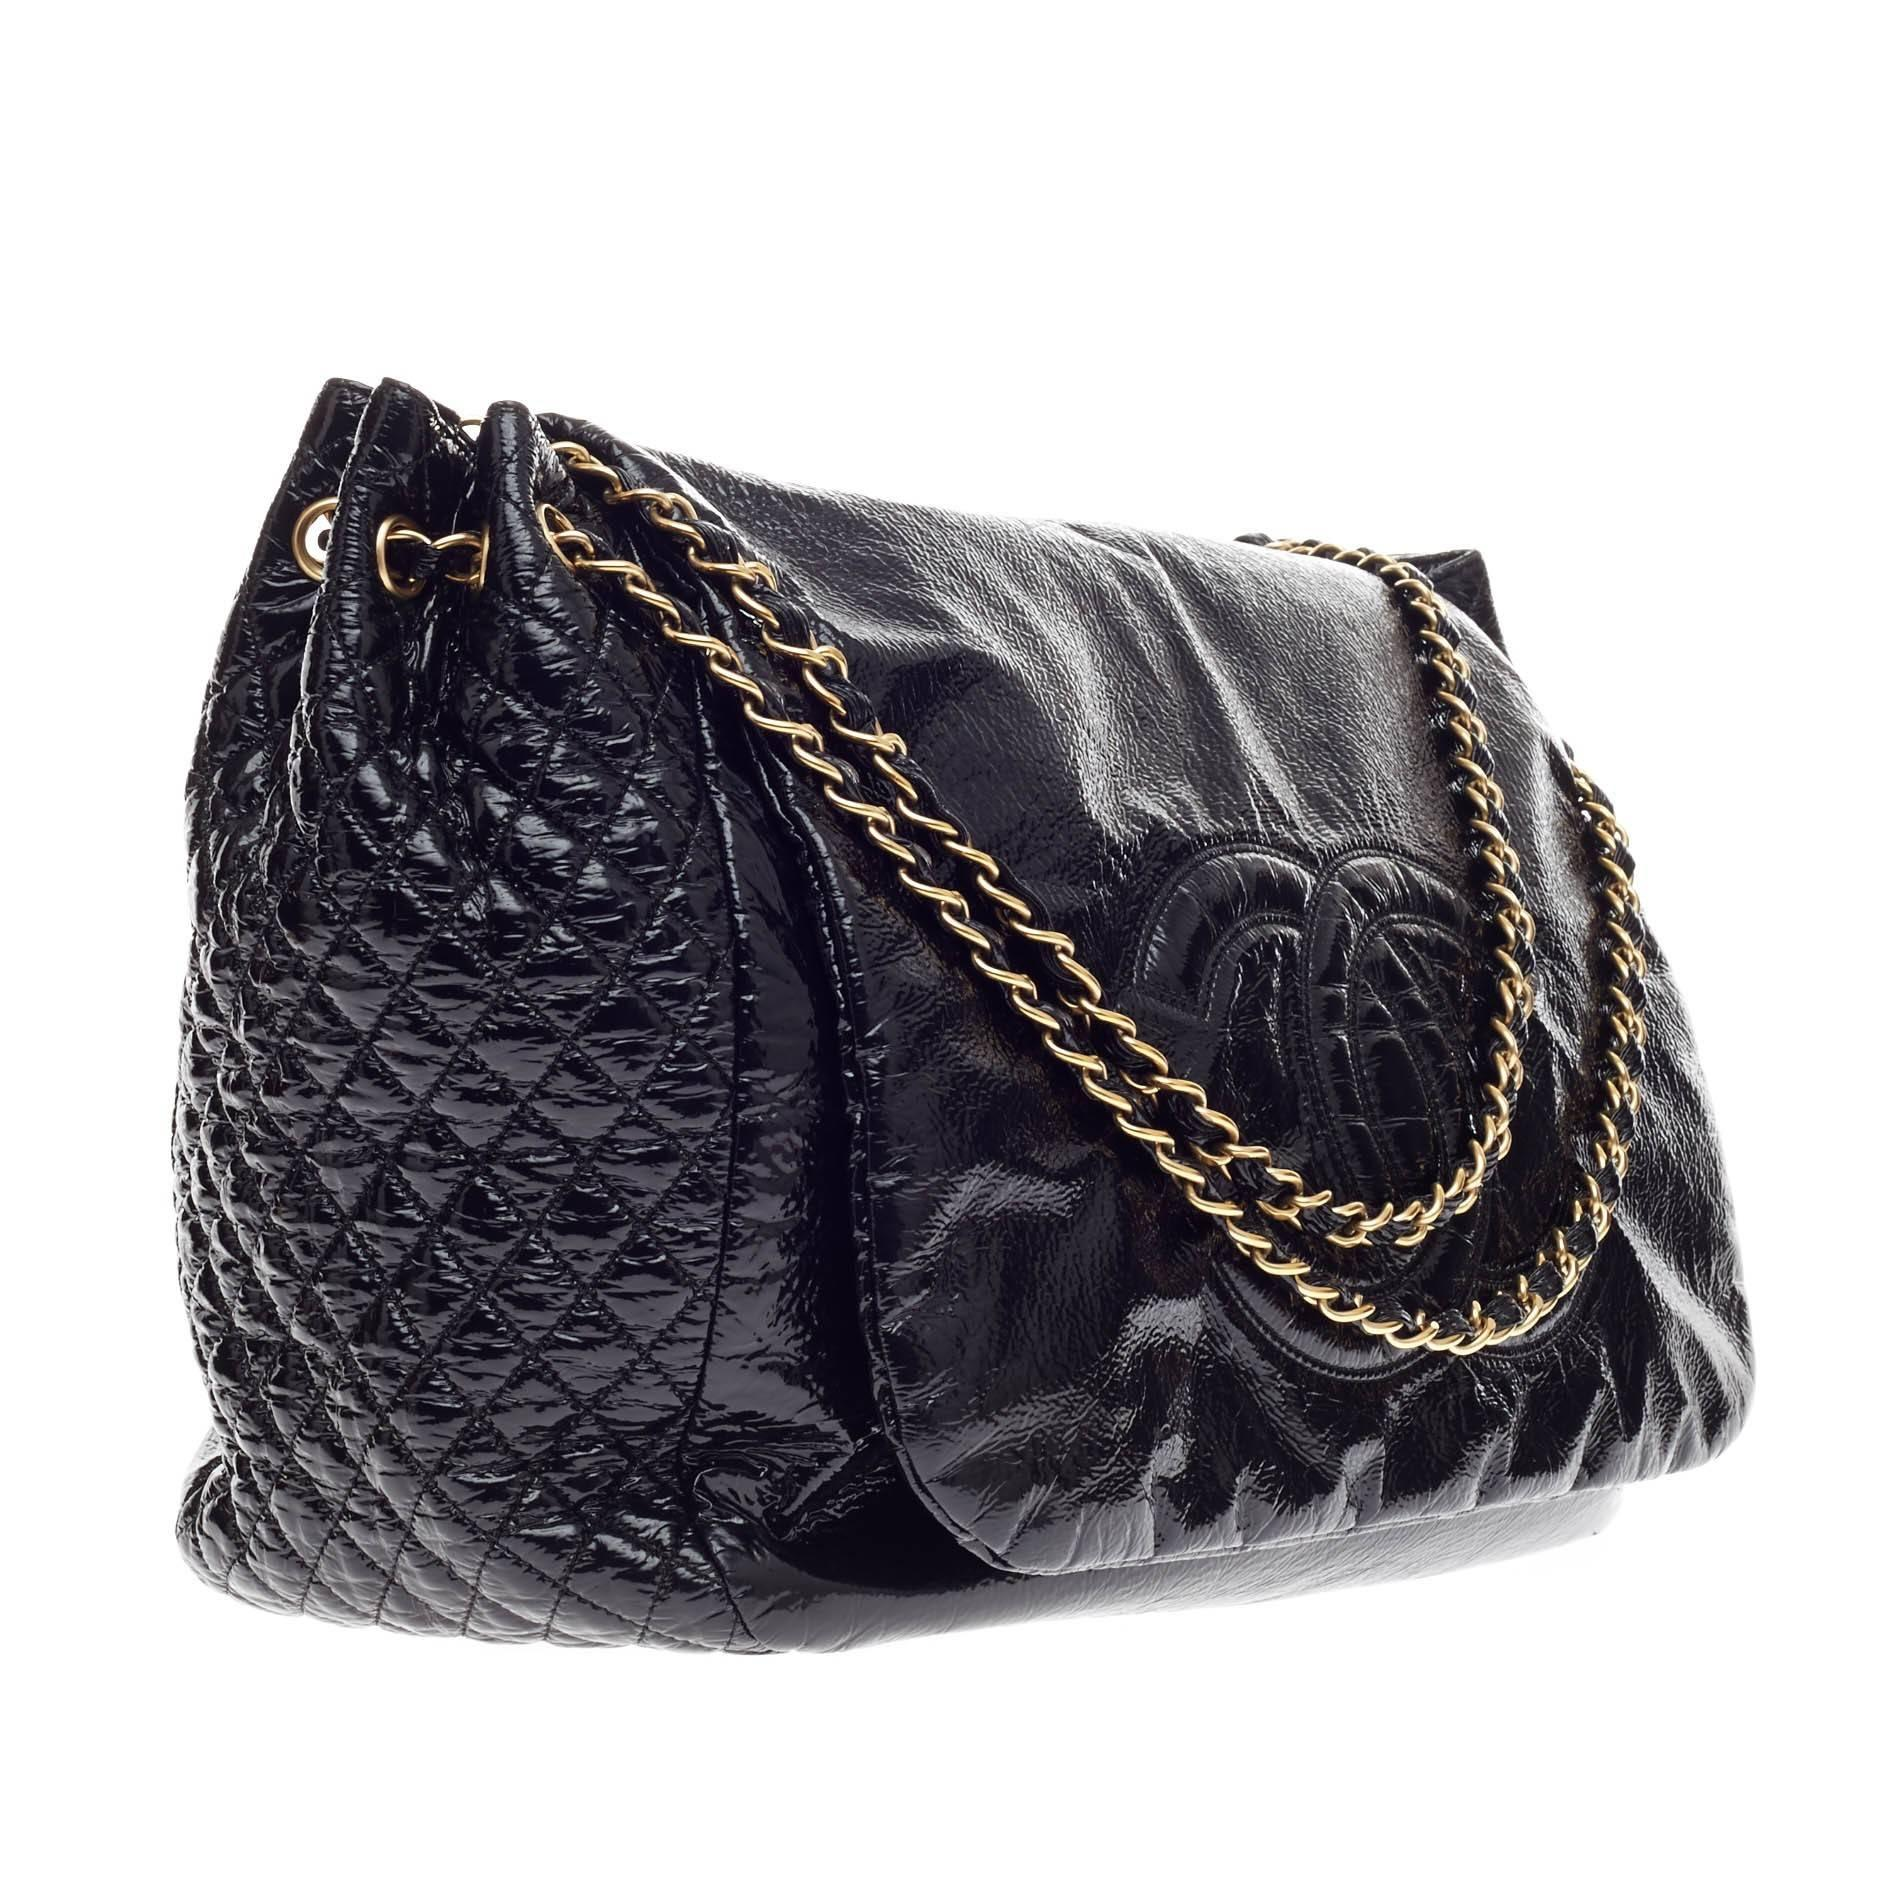 a51264b2ed67 Chanel Rock and Chain Flap Bag Patent Large at 1stdibs